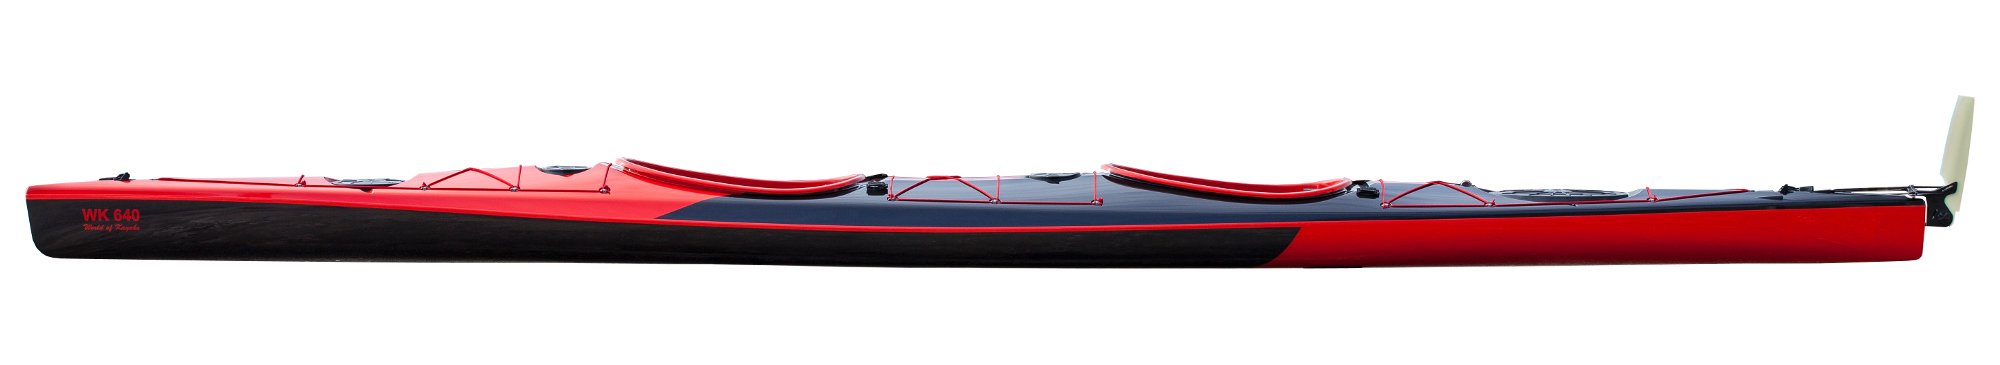 Double Kayak WK 640 Sport Side View